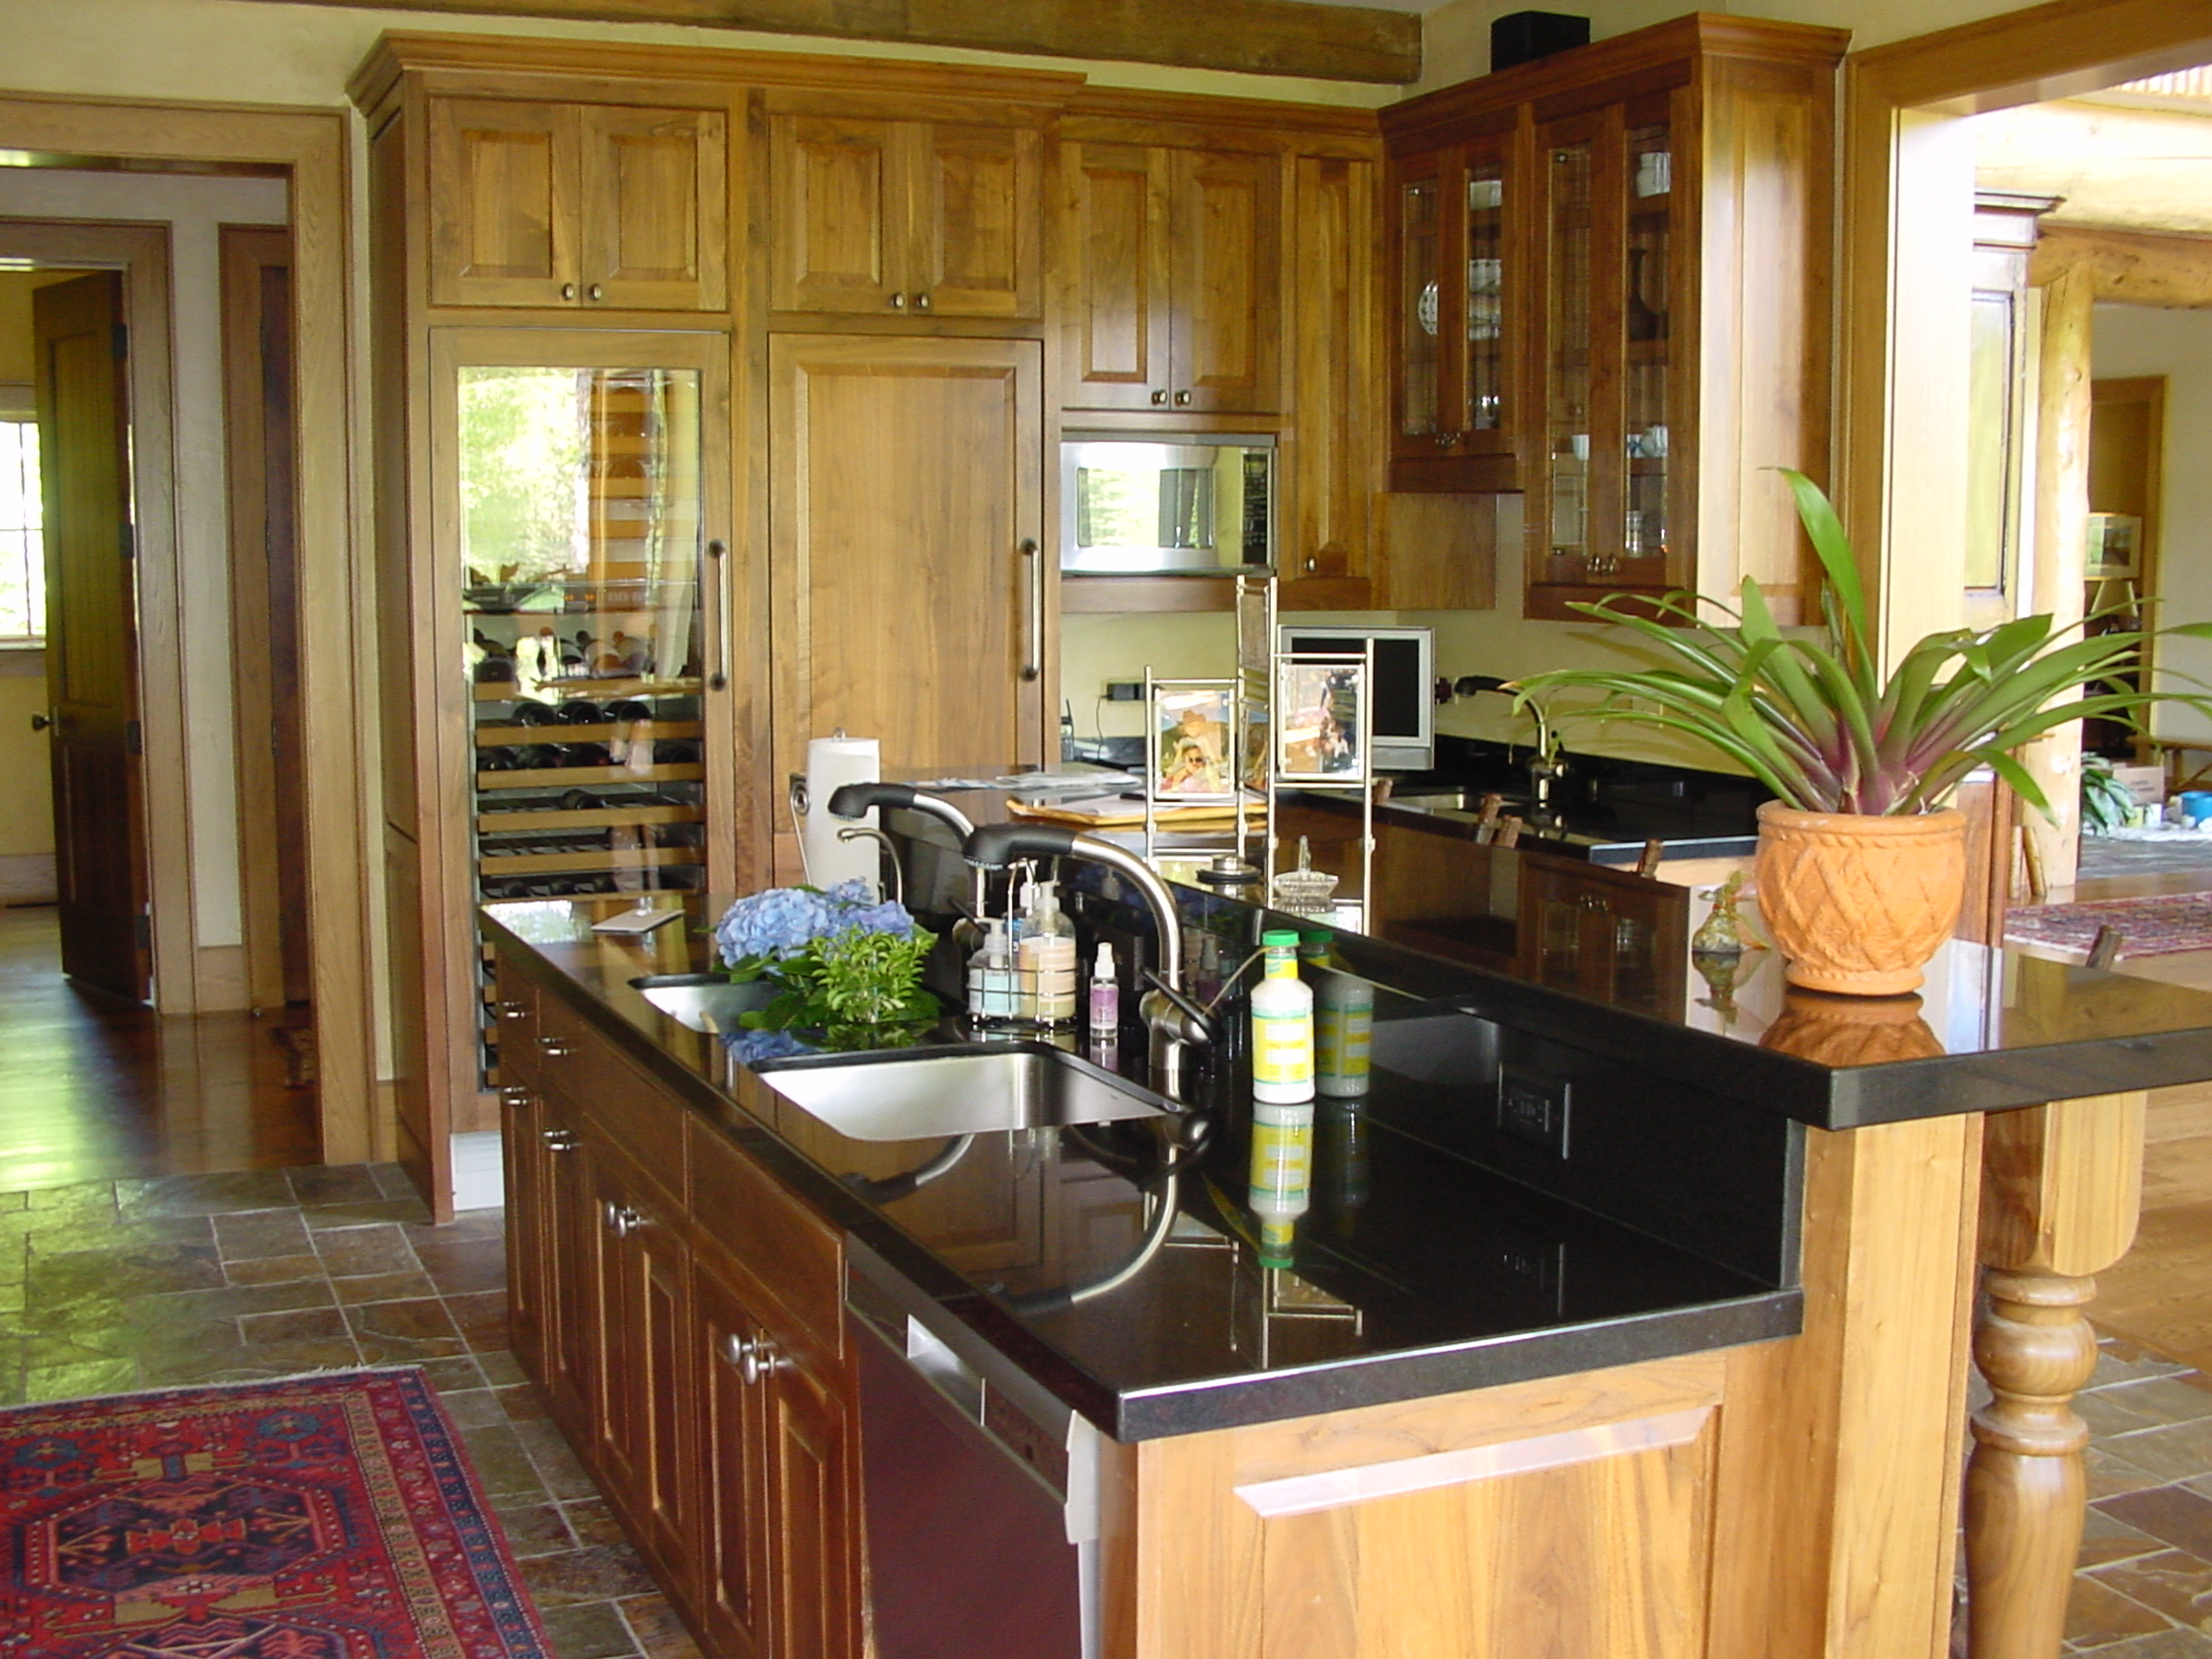 Kitchen 2006, Kitchen Cabinets